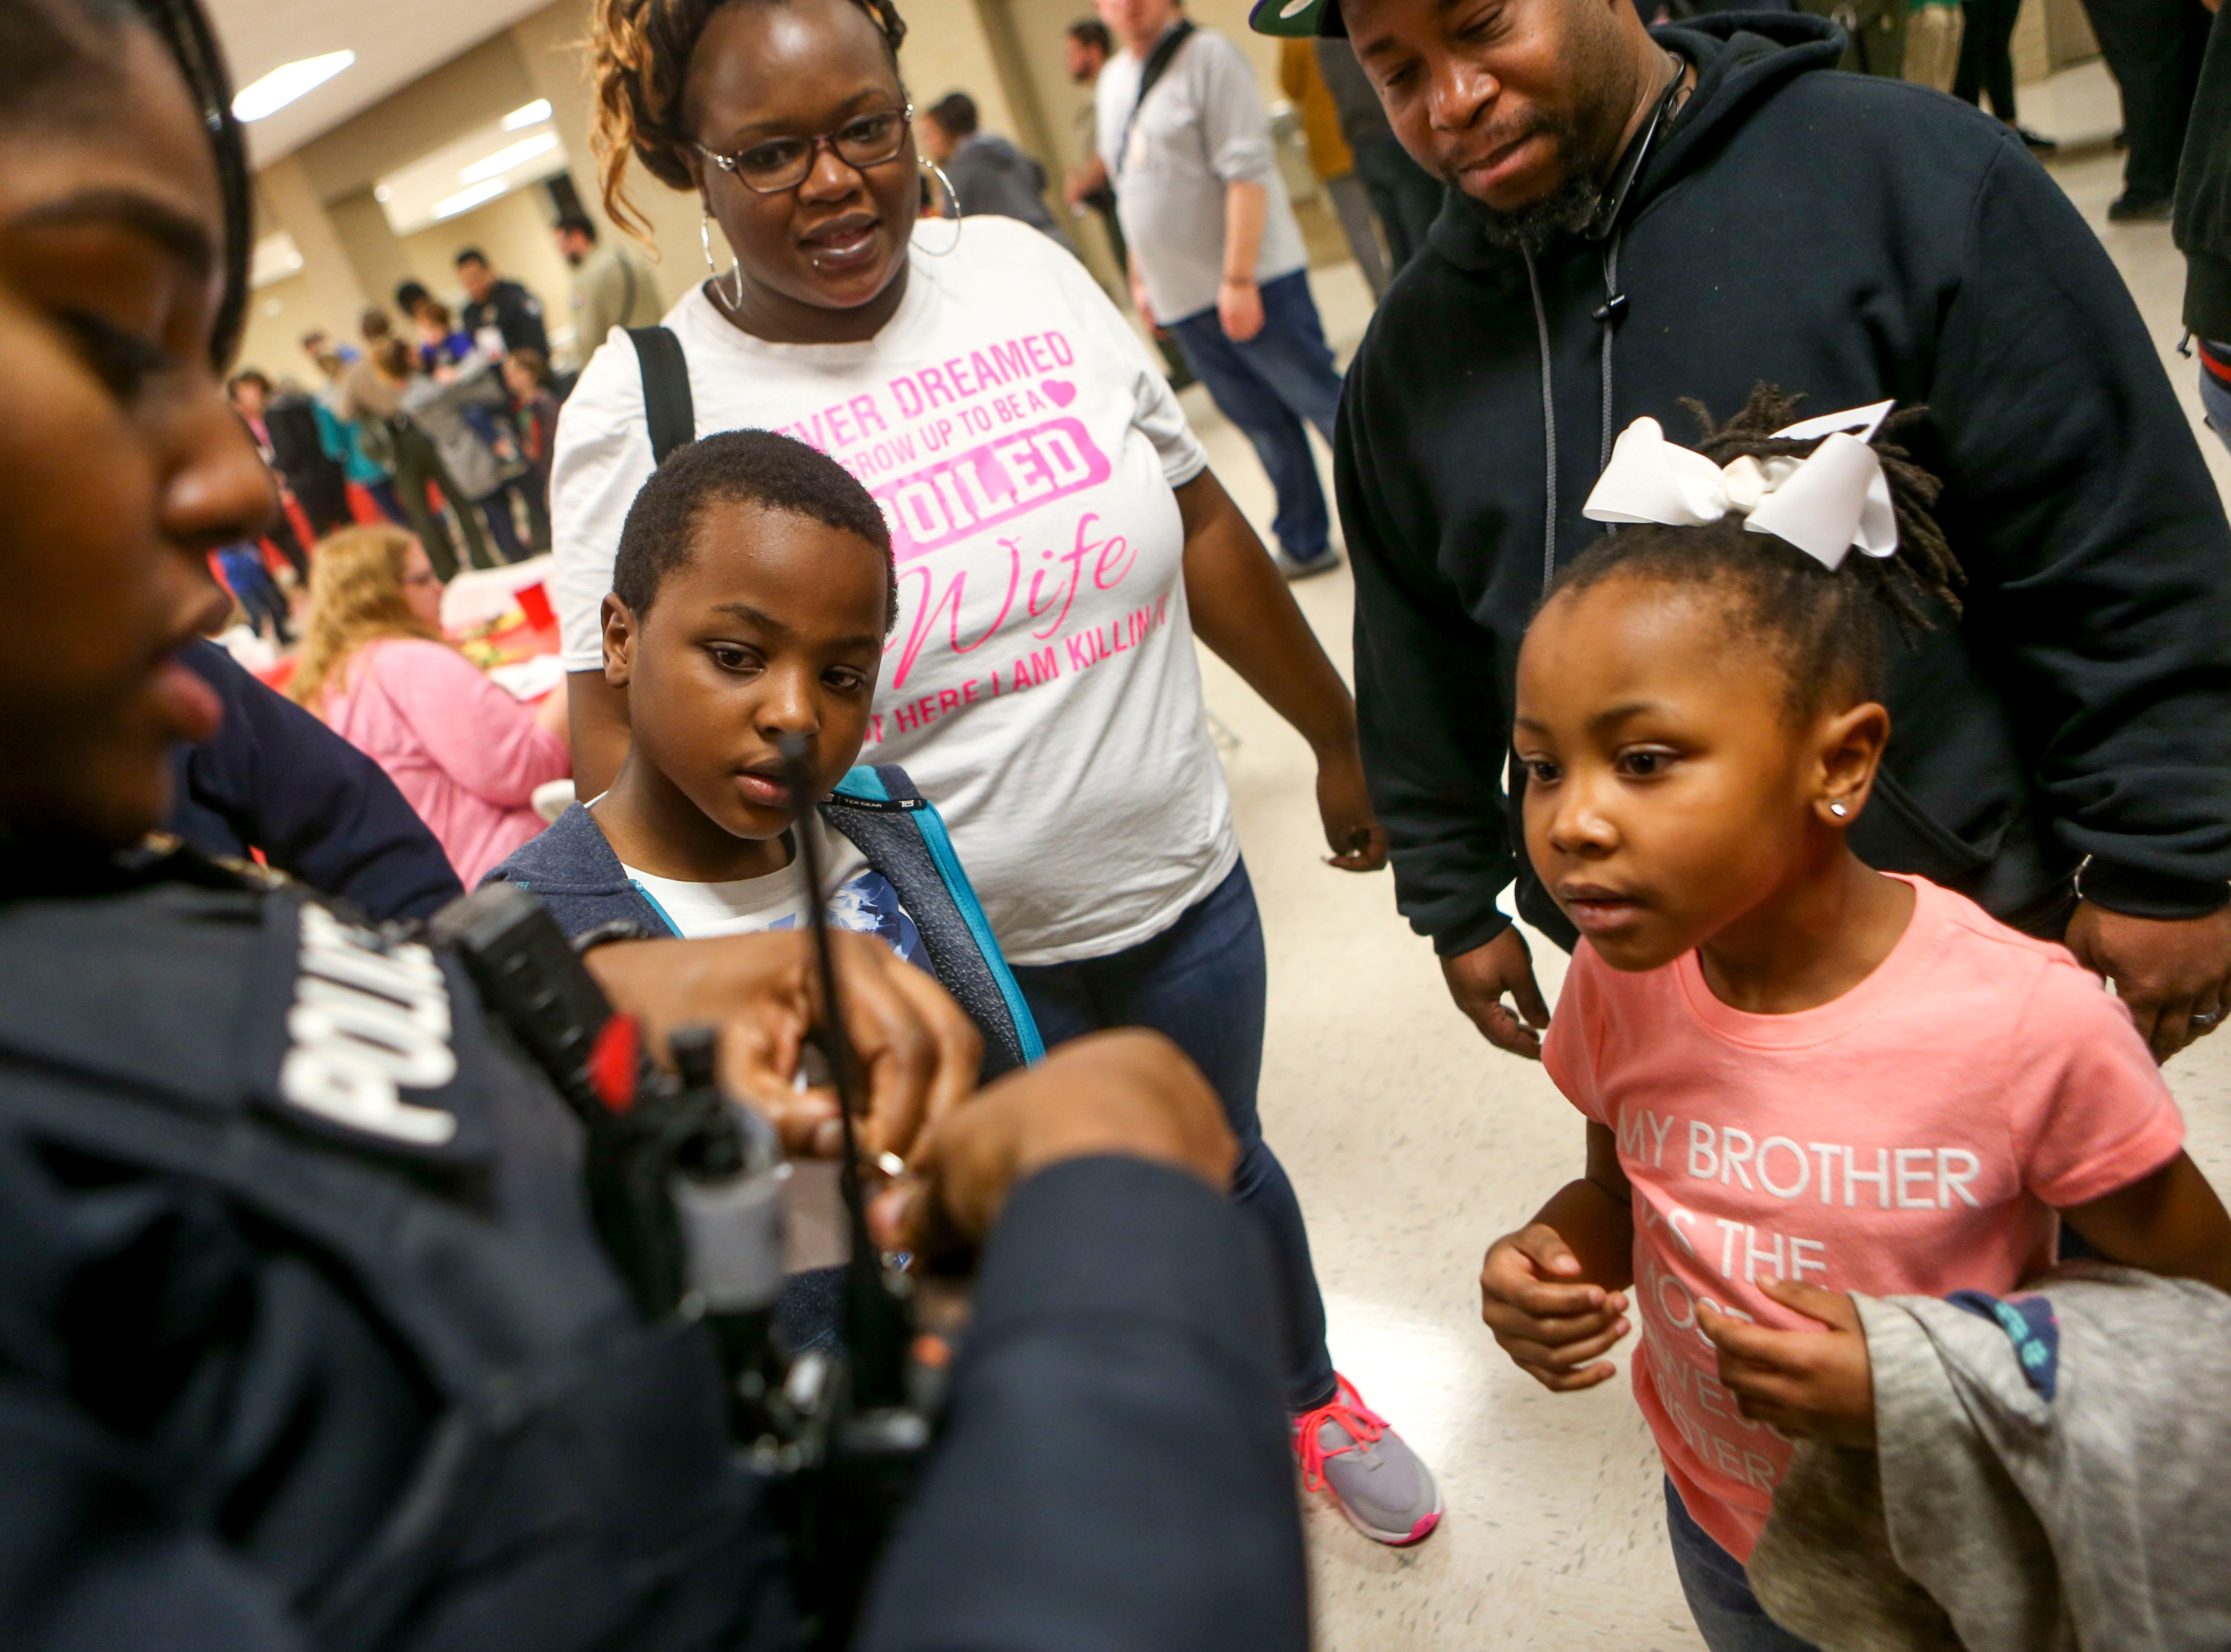 Milan Police Sgt. Chasity Strayhorn presents Catori Dunlap, 6, right, and Steve Hunter, 7, left, a special set of keys during the matching time for Shop with a Cop at Hawkins-Whitby Fema Community Safe Room in Milan, Tenn., on Thursday, Dec. 13, 2018.